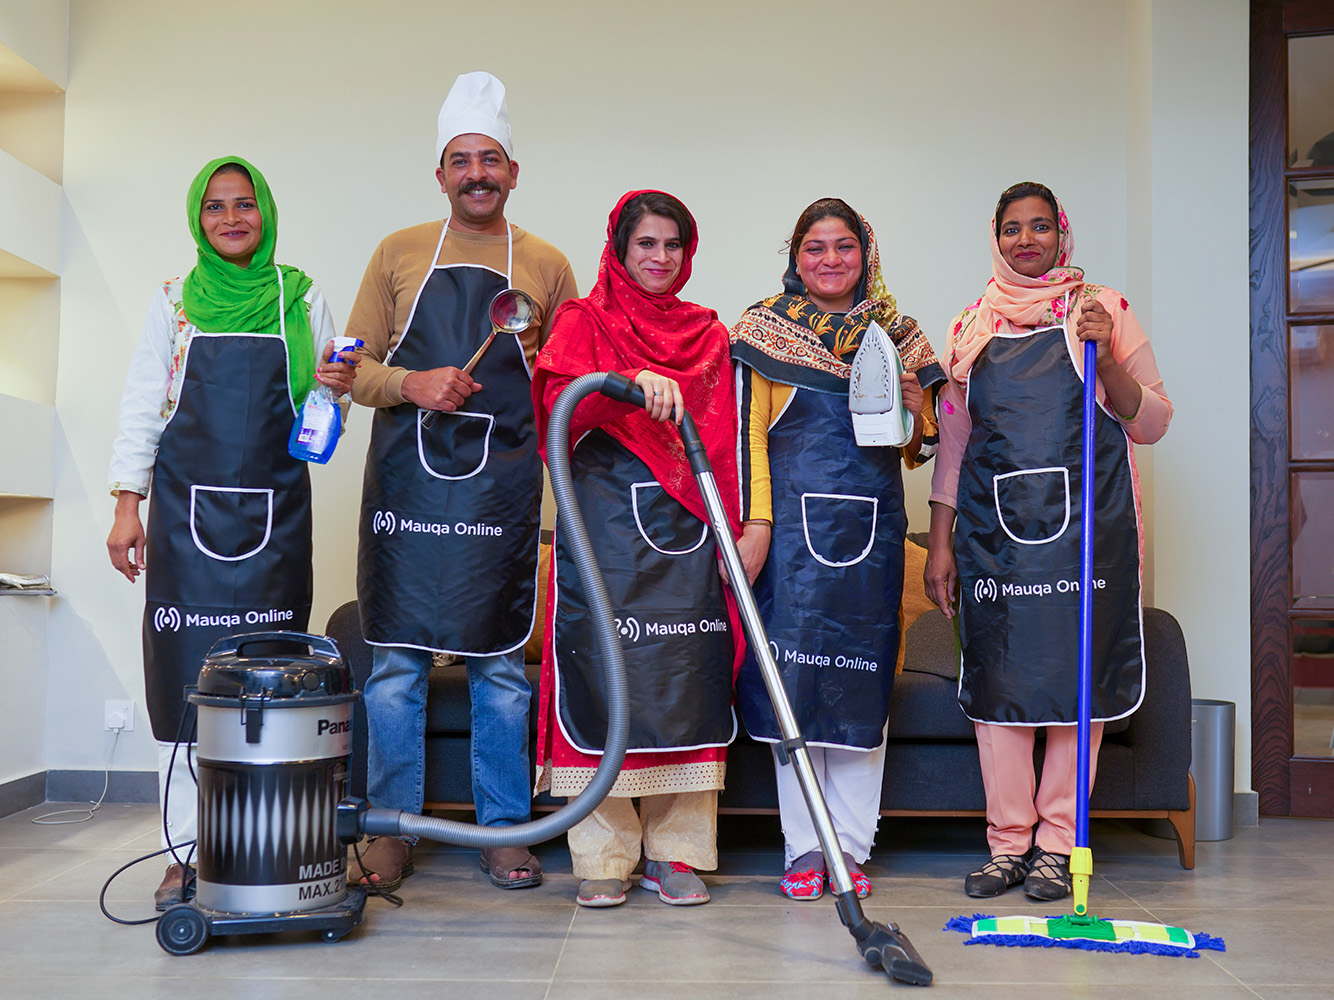 maids and cleaners for regular household chores in Islamabad, Rawalpindi and Lahore.